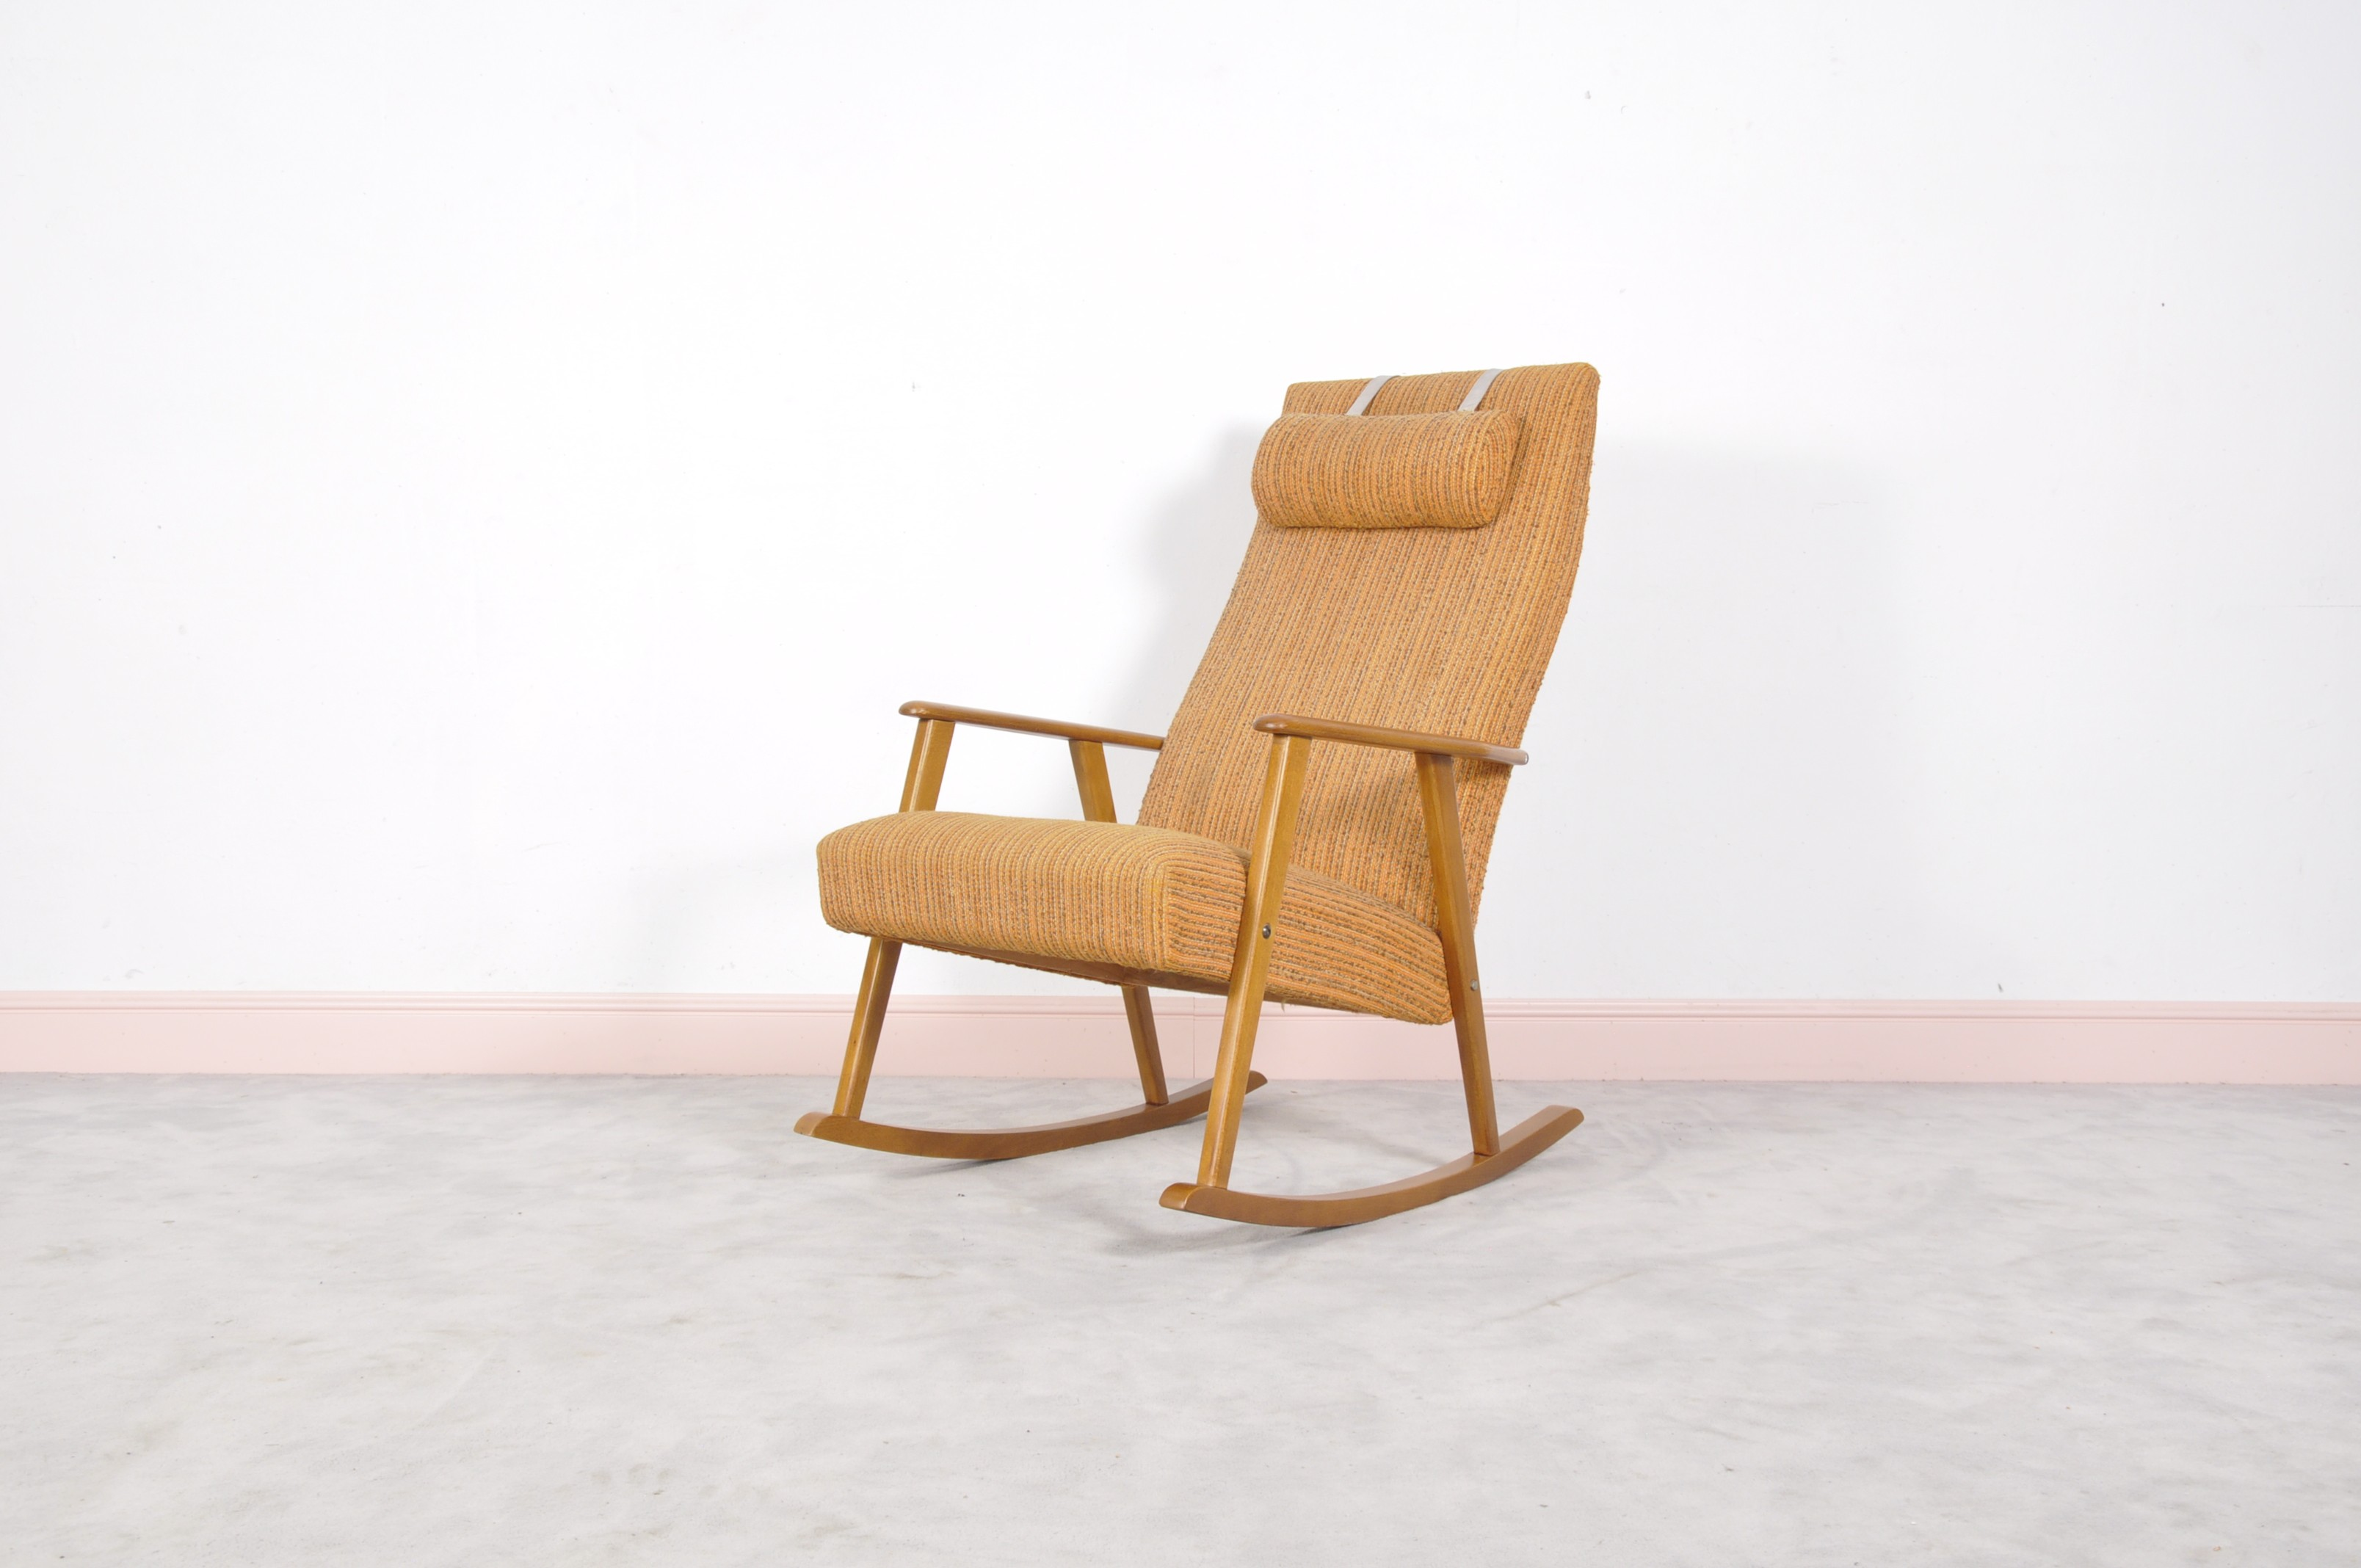 bentwood chairish mid century wood chair aspect beech rocking modern product cane natural height fit and width